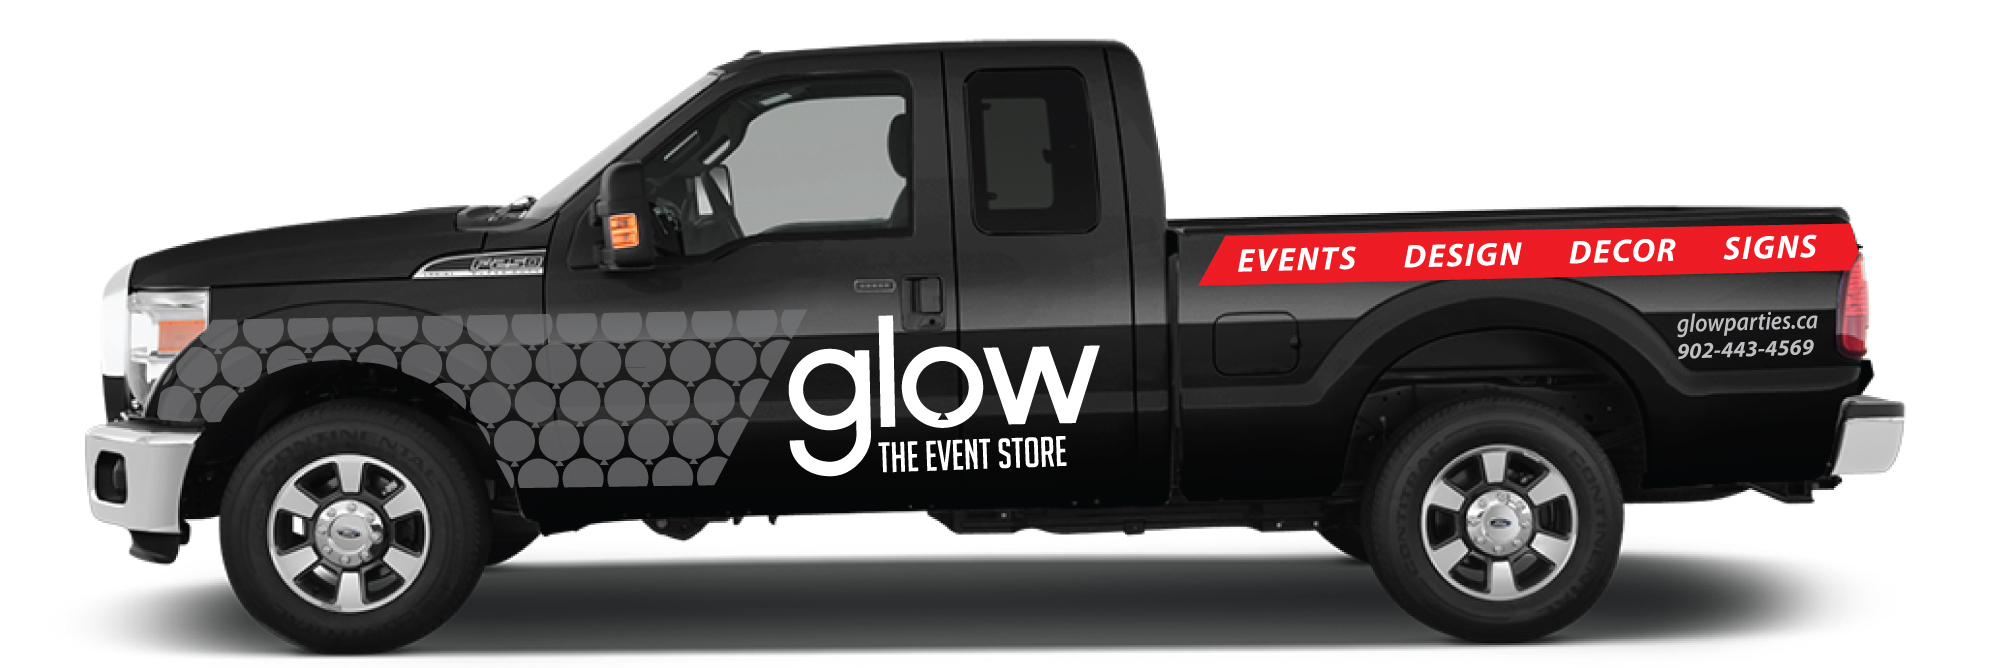 Glow The Event Store The Event Store